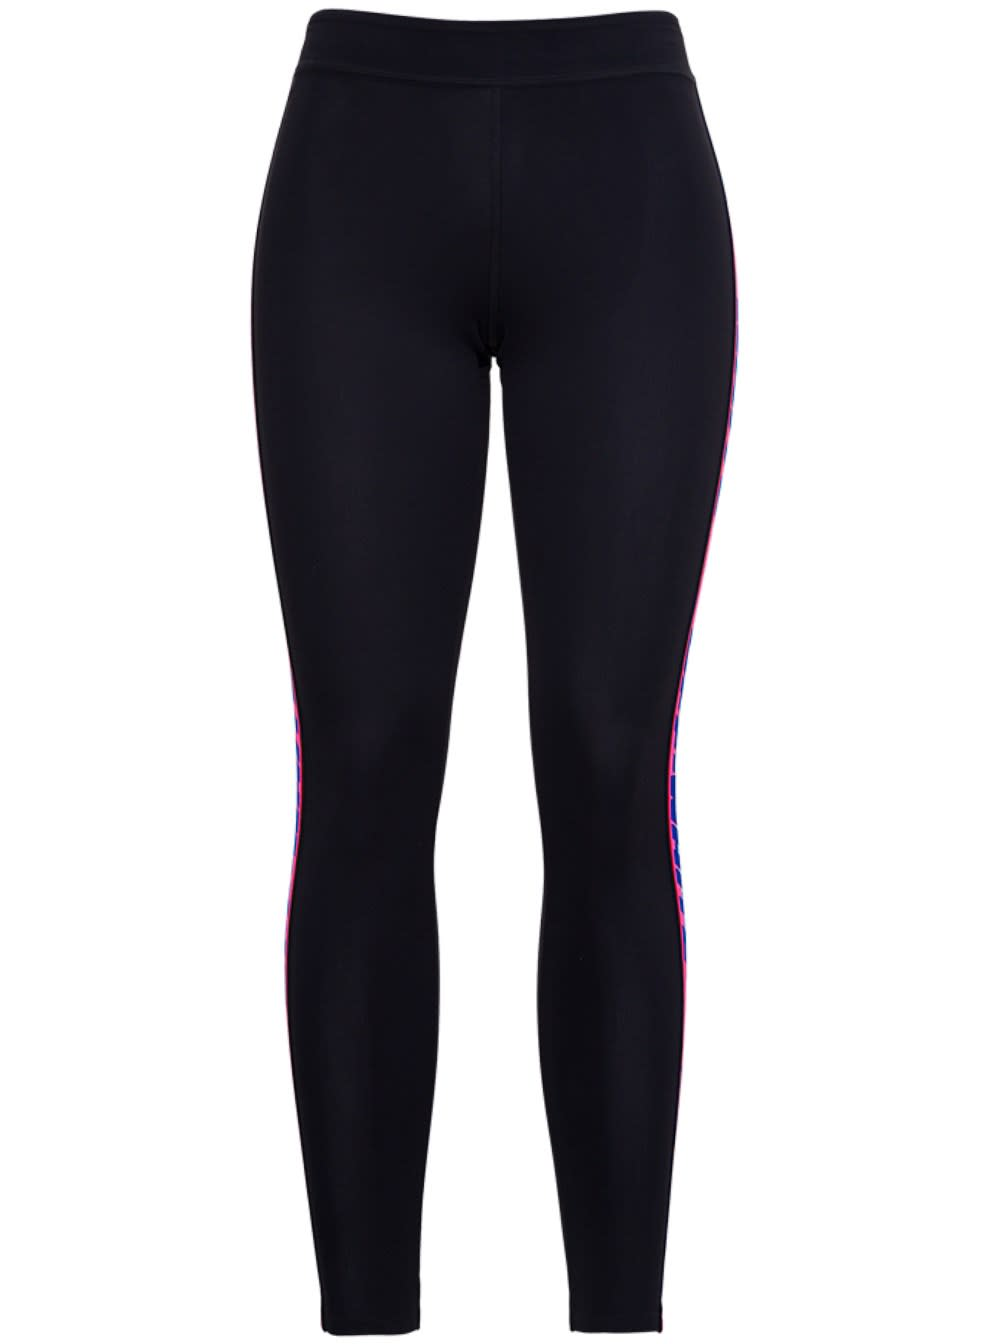 Off-White Leggings ATHLEISURE LEGGINGS WITH SIDE LOGO BANDS